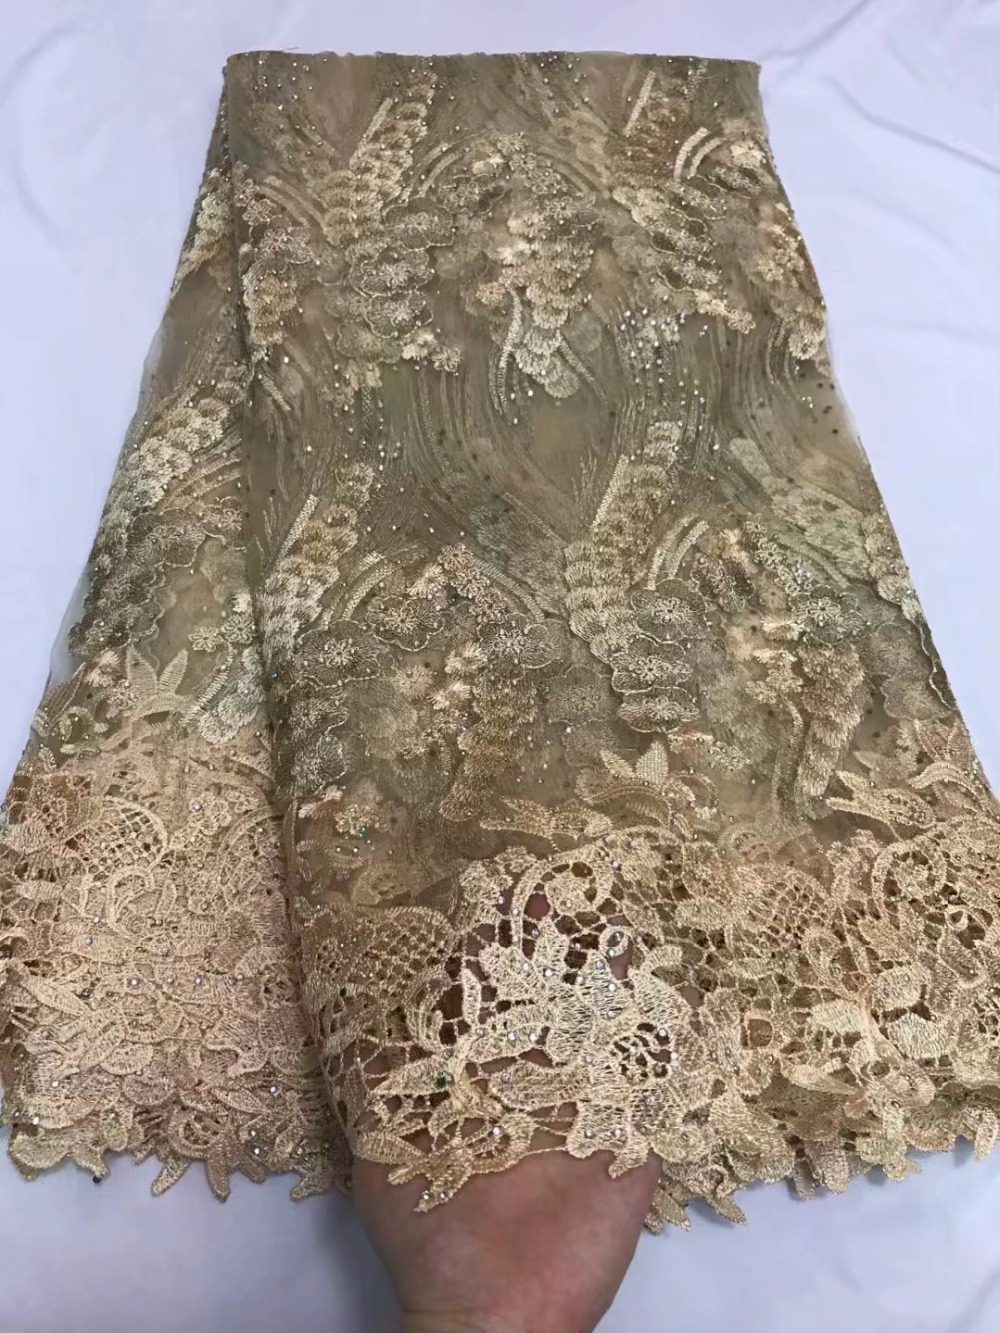 african fabric 2018 wine tulle lace fabric with stones tissus guipure tulle  perle dentelle high quality 5yard lotZQF 81-in Lace from Home   Garden on  ... ce6a3a337fed